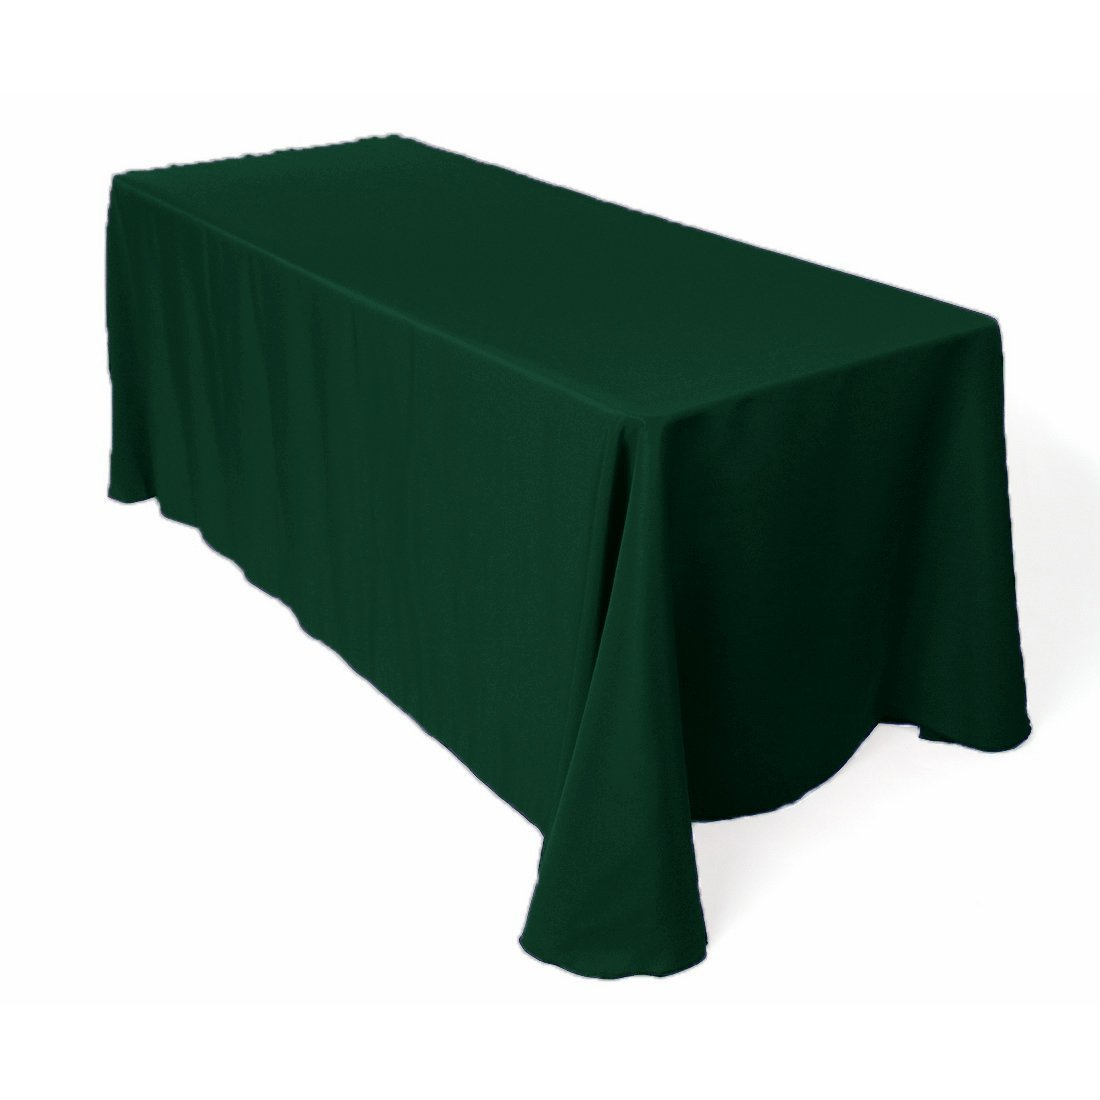 Gee Di Moda Rectangle Tablecloth - 90 x 132 Inch - Hunter Green Rectangular Table Cloth for 6 Foot Table in Washable Polyester - Great for Buffet Table, Parties, Holiday Dinner, Wedding & More